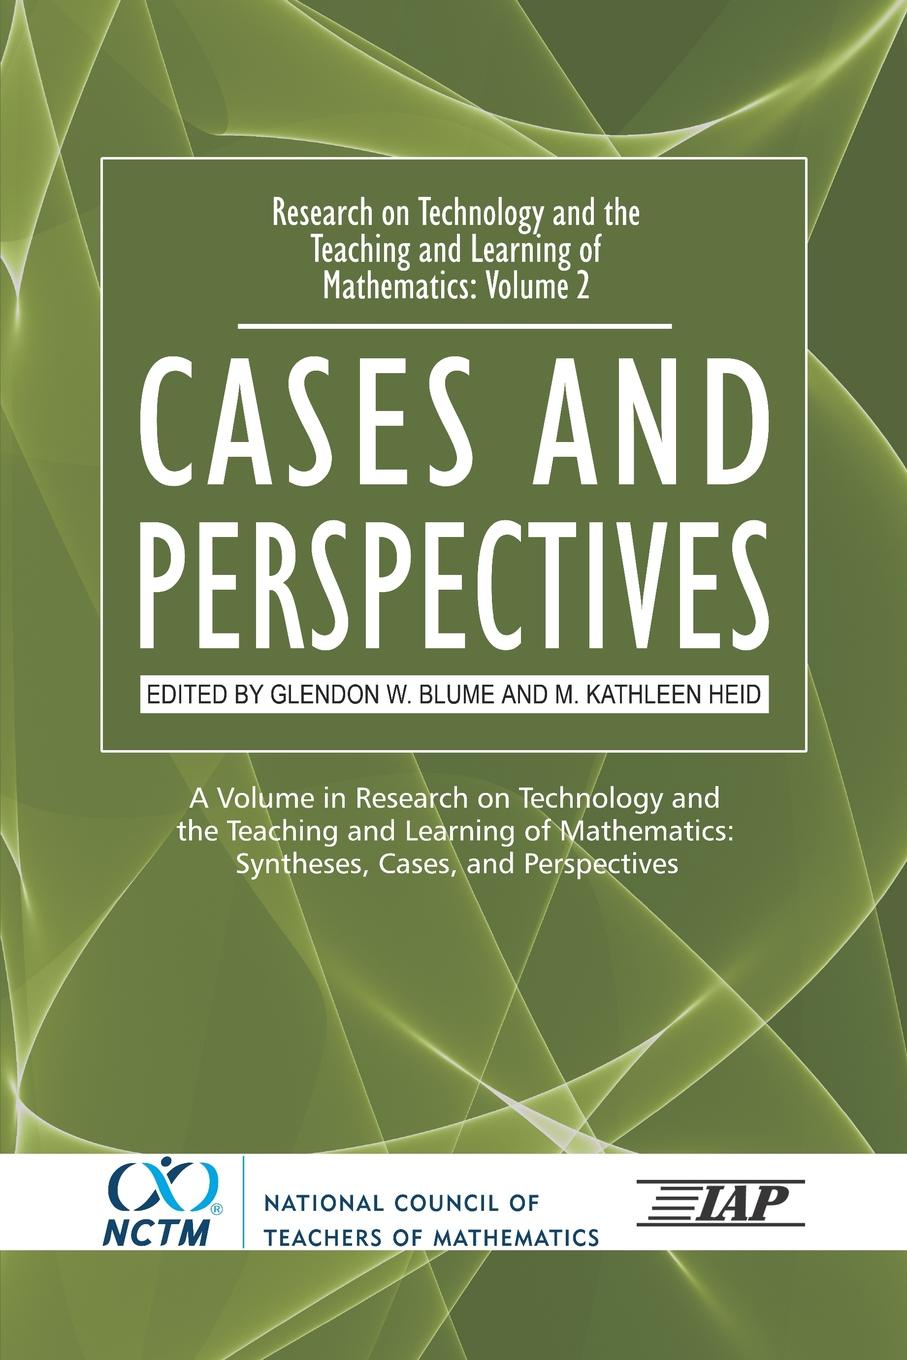 Research on Technology and the Teaching and Learning of Mathematics. Vol. 2, Cases and Perspectives (PB) kinji mori concept oriented research and development in information technology